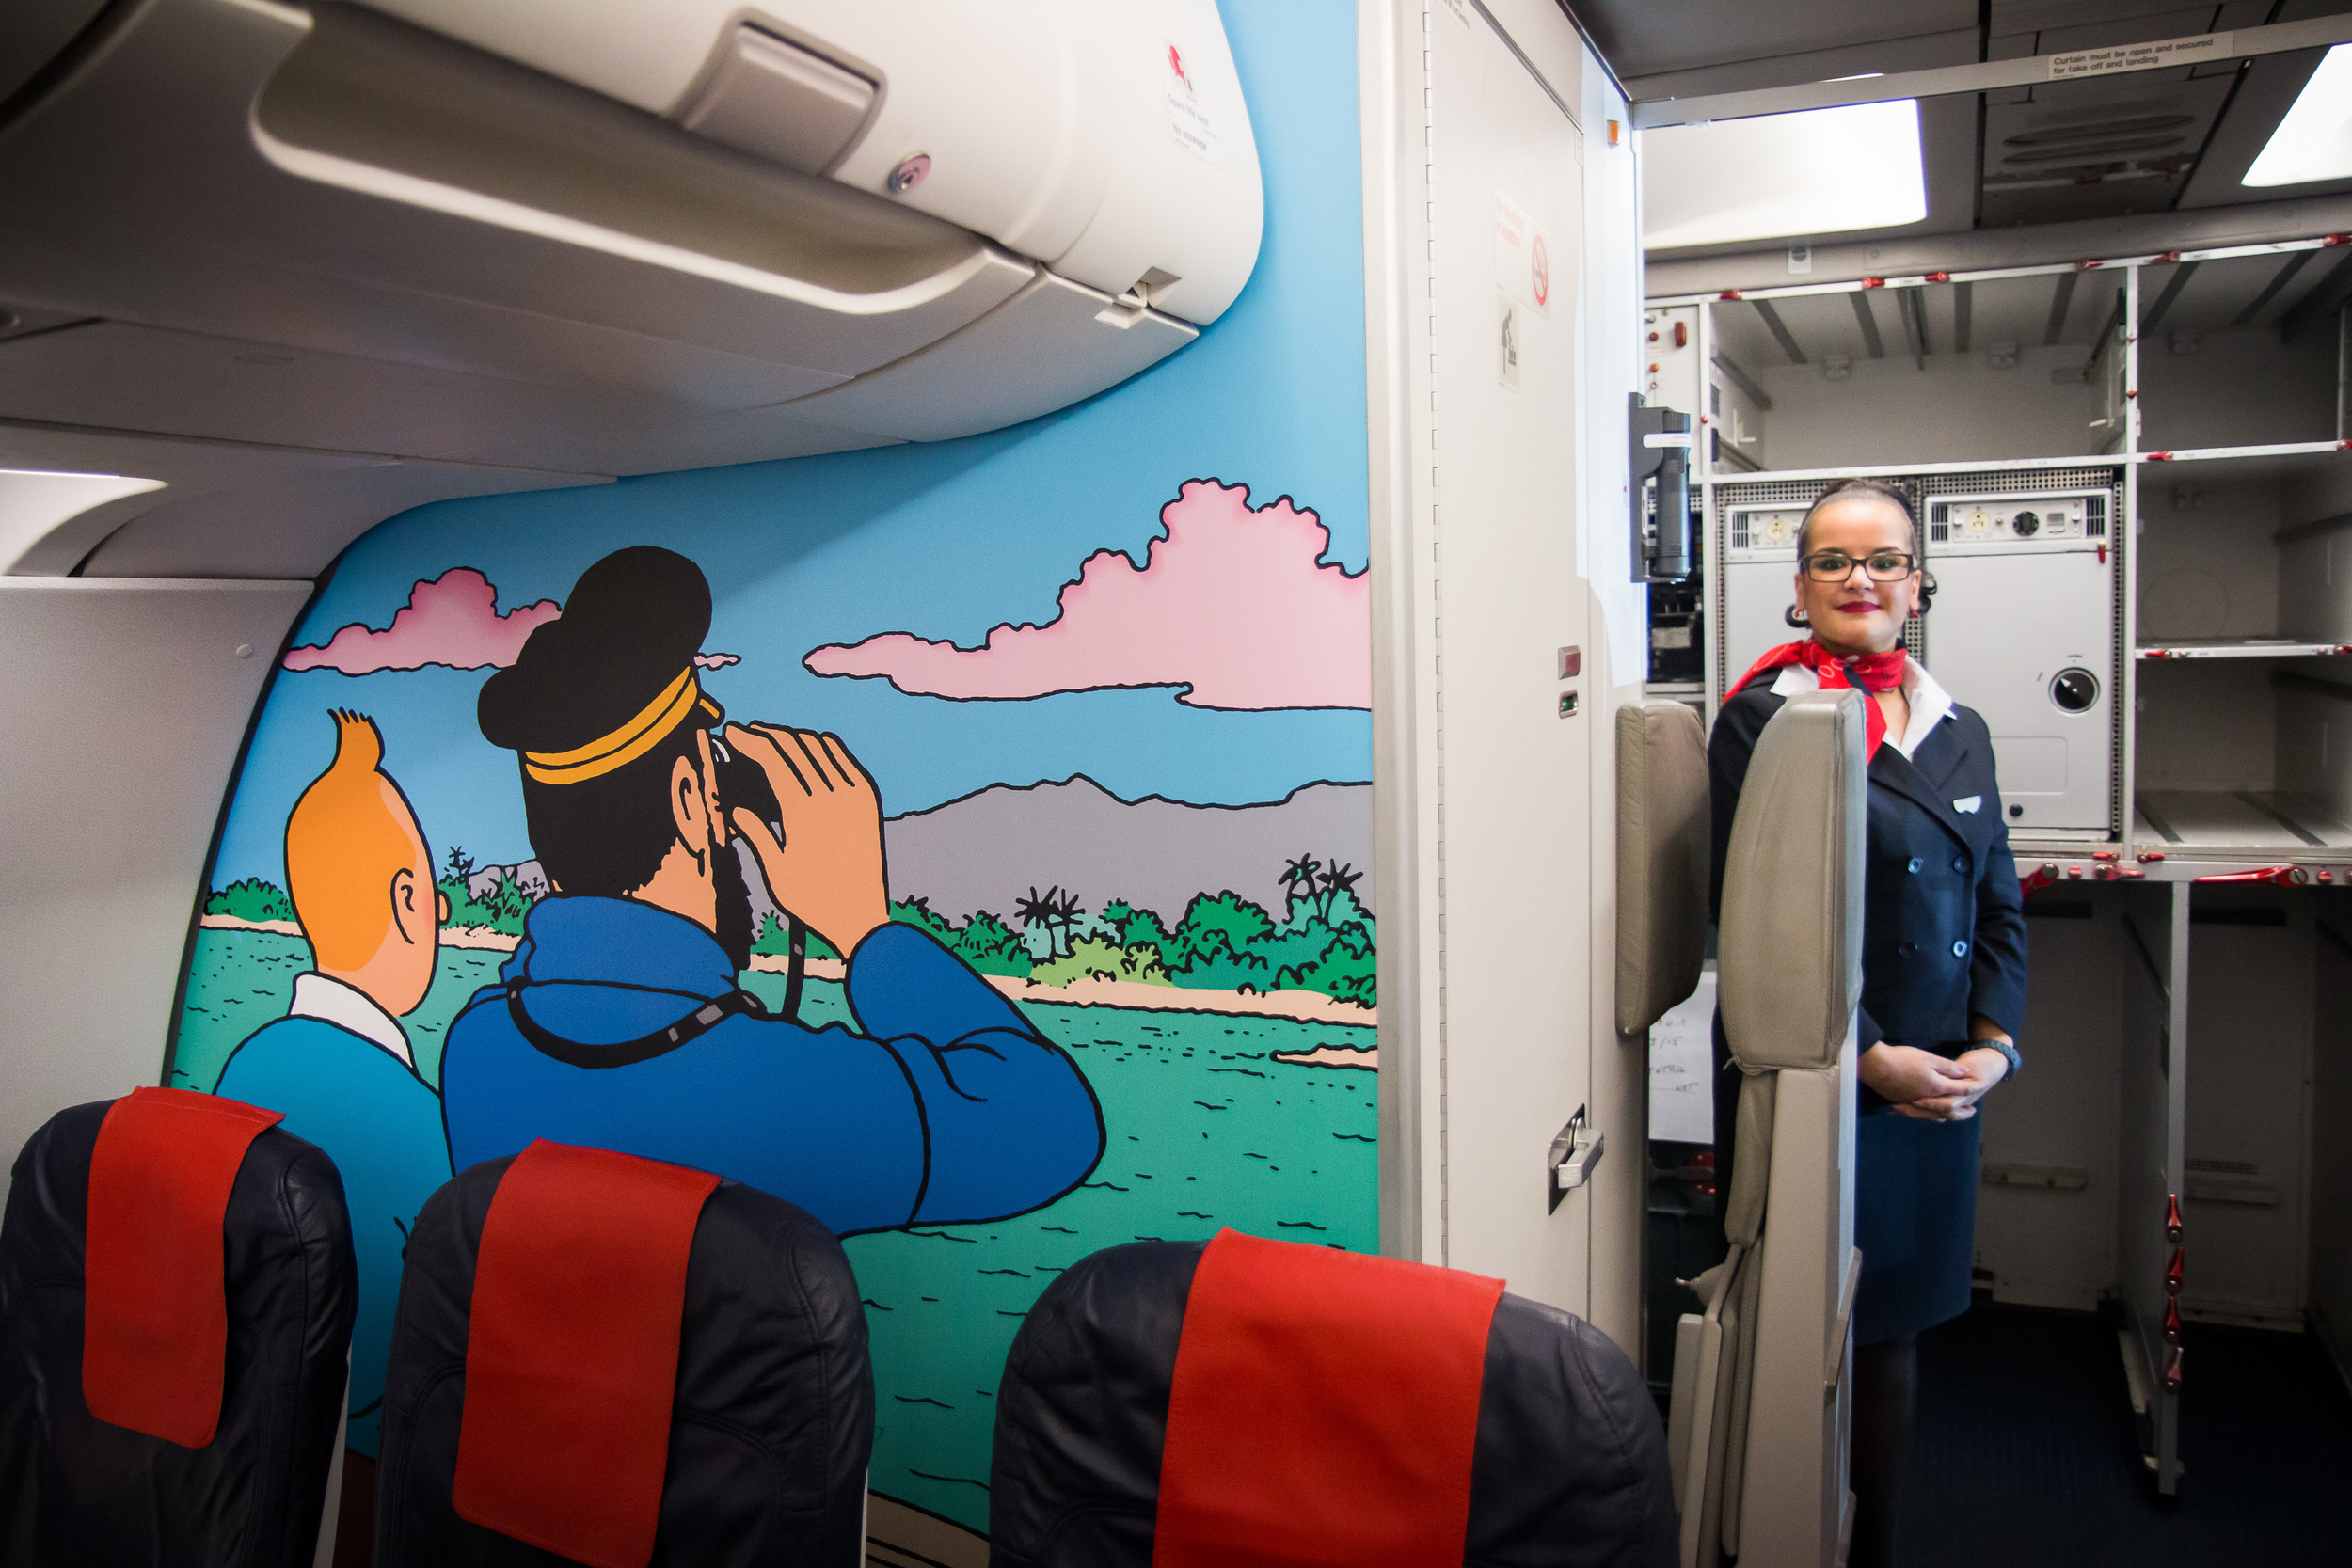 How many children have got their first glimpse of the World and of distant lands through the adventures of Tintin?